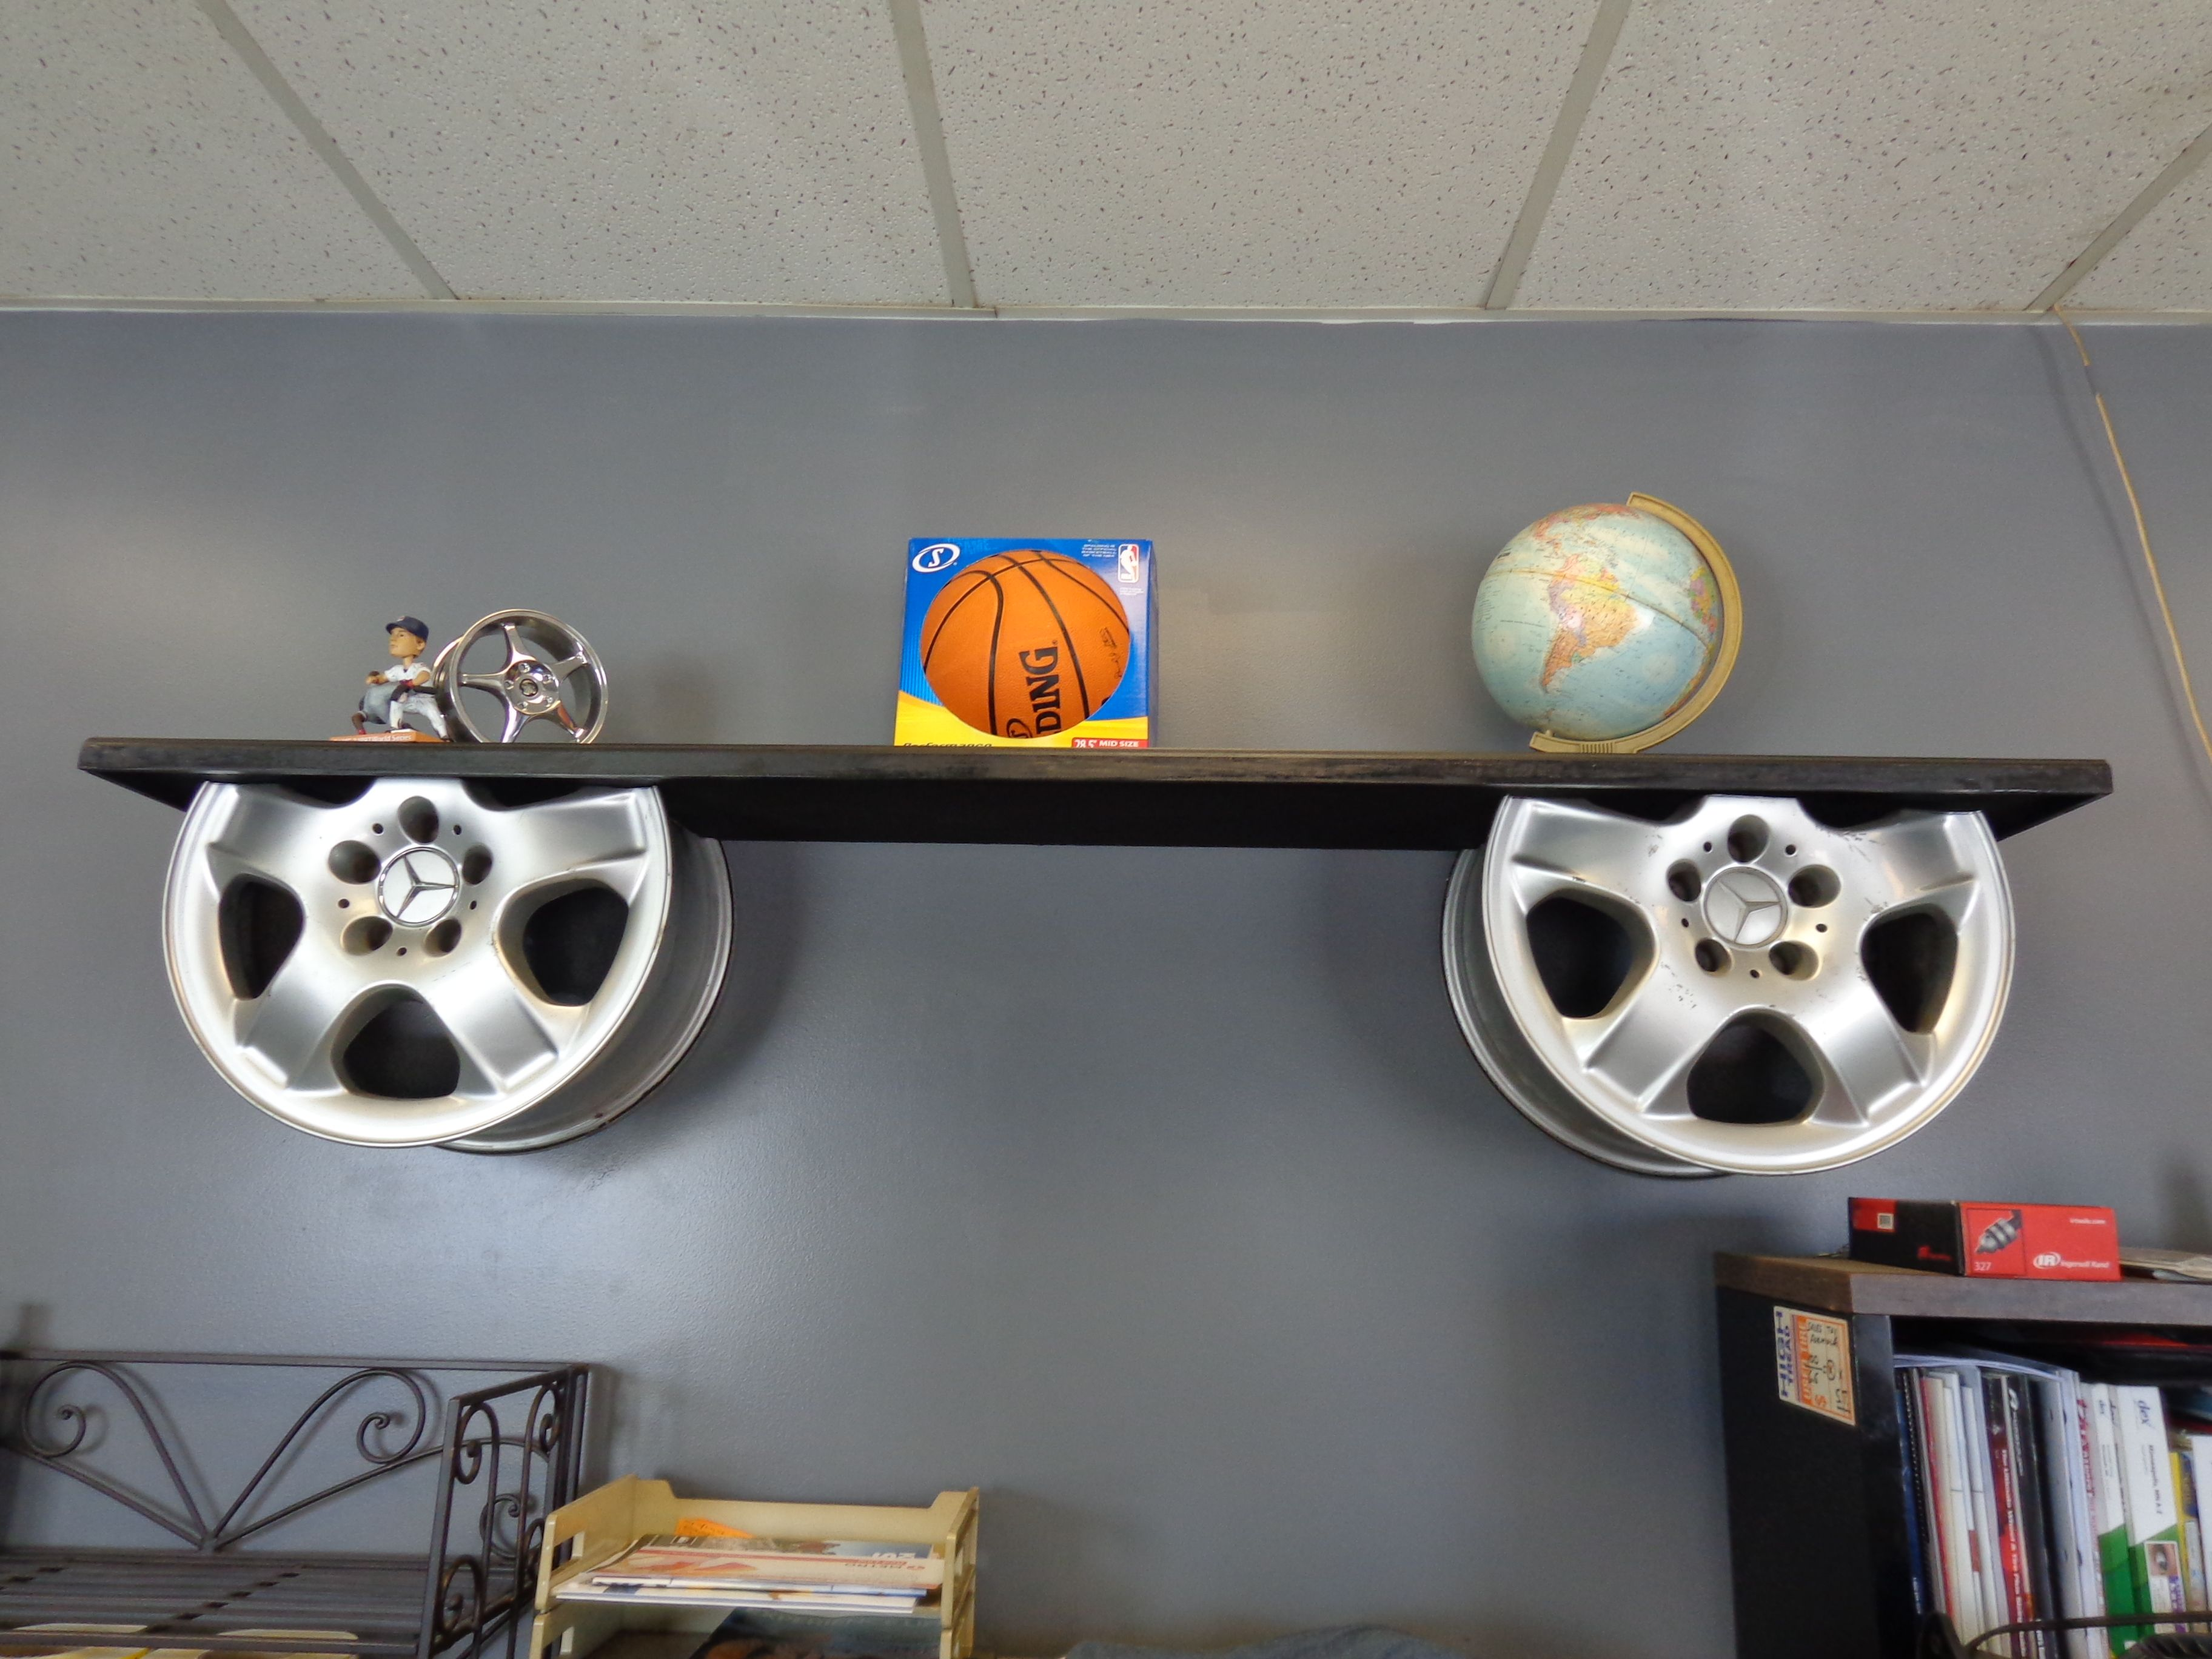 A Simple Auto Decor Themed Shelf Made Out Of Wheels While Not Tire Repurposing Its Still In The Car And Scheme